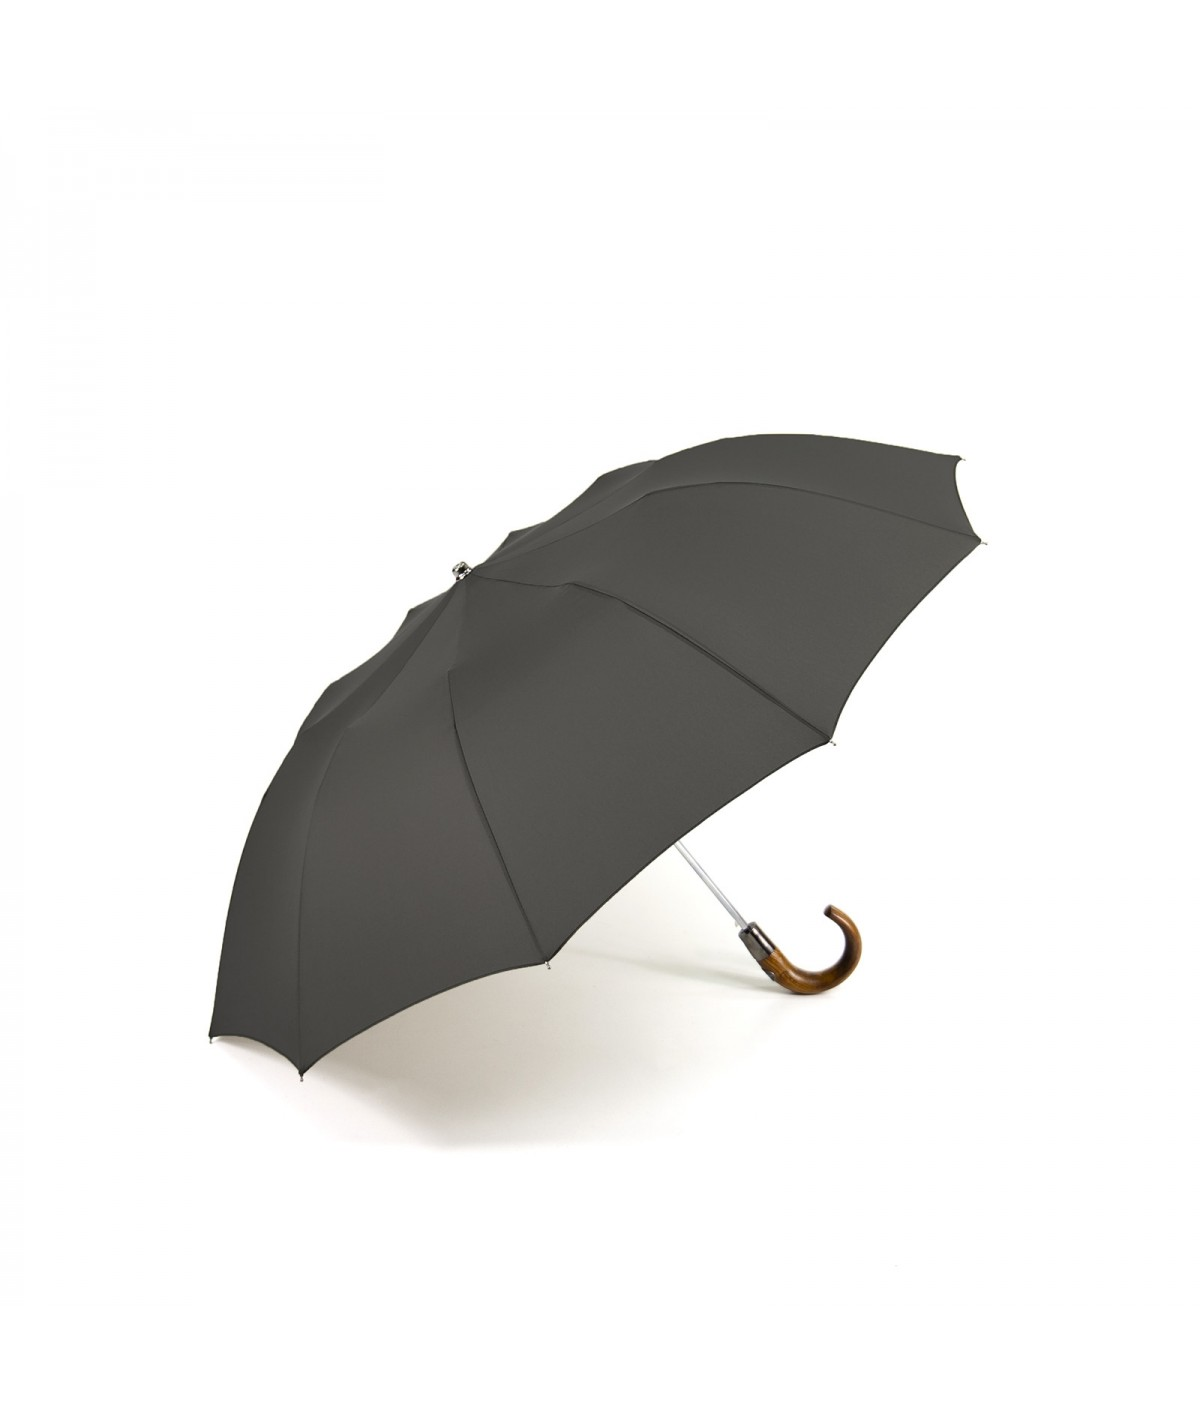 "→ ""The Practice & Chic"" Umbrella - Automatic folding (10 ribs) - Rifle - by the French Manufacturer Maison Pierre Vaux"